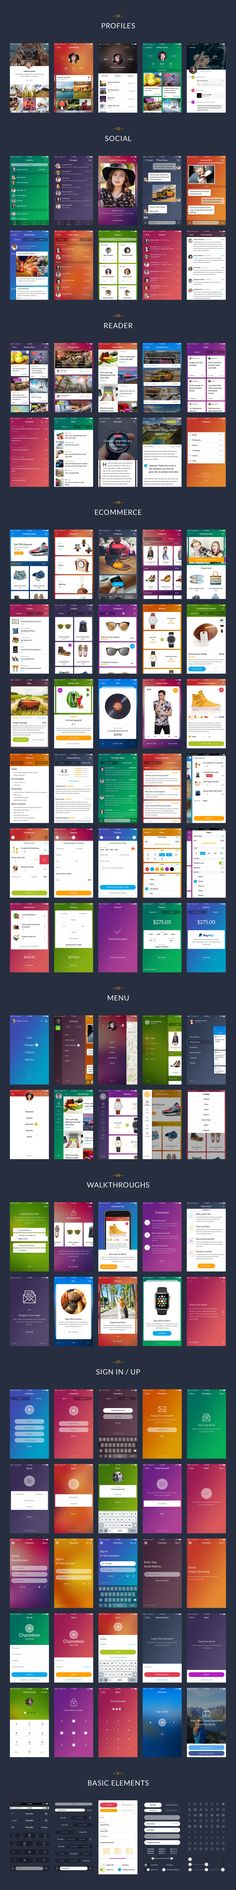 Chameleon is a modern mobile UI kit for Sketch and Photoshop. With 100 beautiful screens in 7 categories, 15 unique themes, 60 icons and hundreds of neatly organized components you can easily create design for your mobile app. Design Android, Ios App Design, Mobile Ui Design, Dashboard Design, Interface Web, Interface Design, Web Design, Flat Design, Icon Design